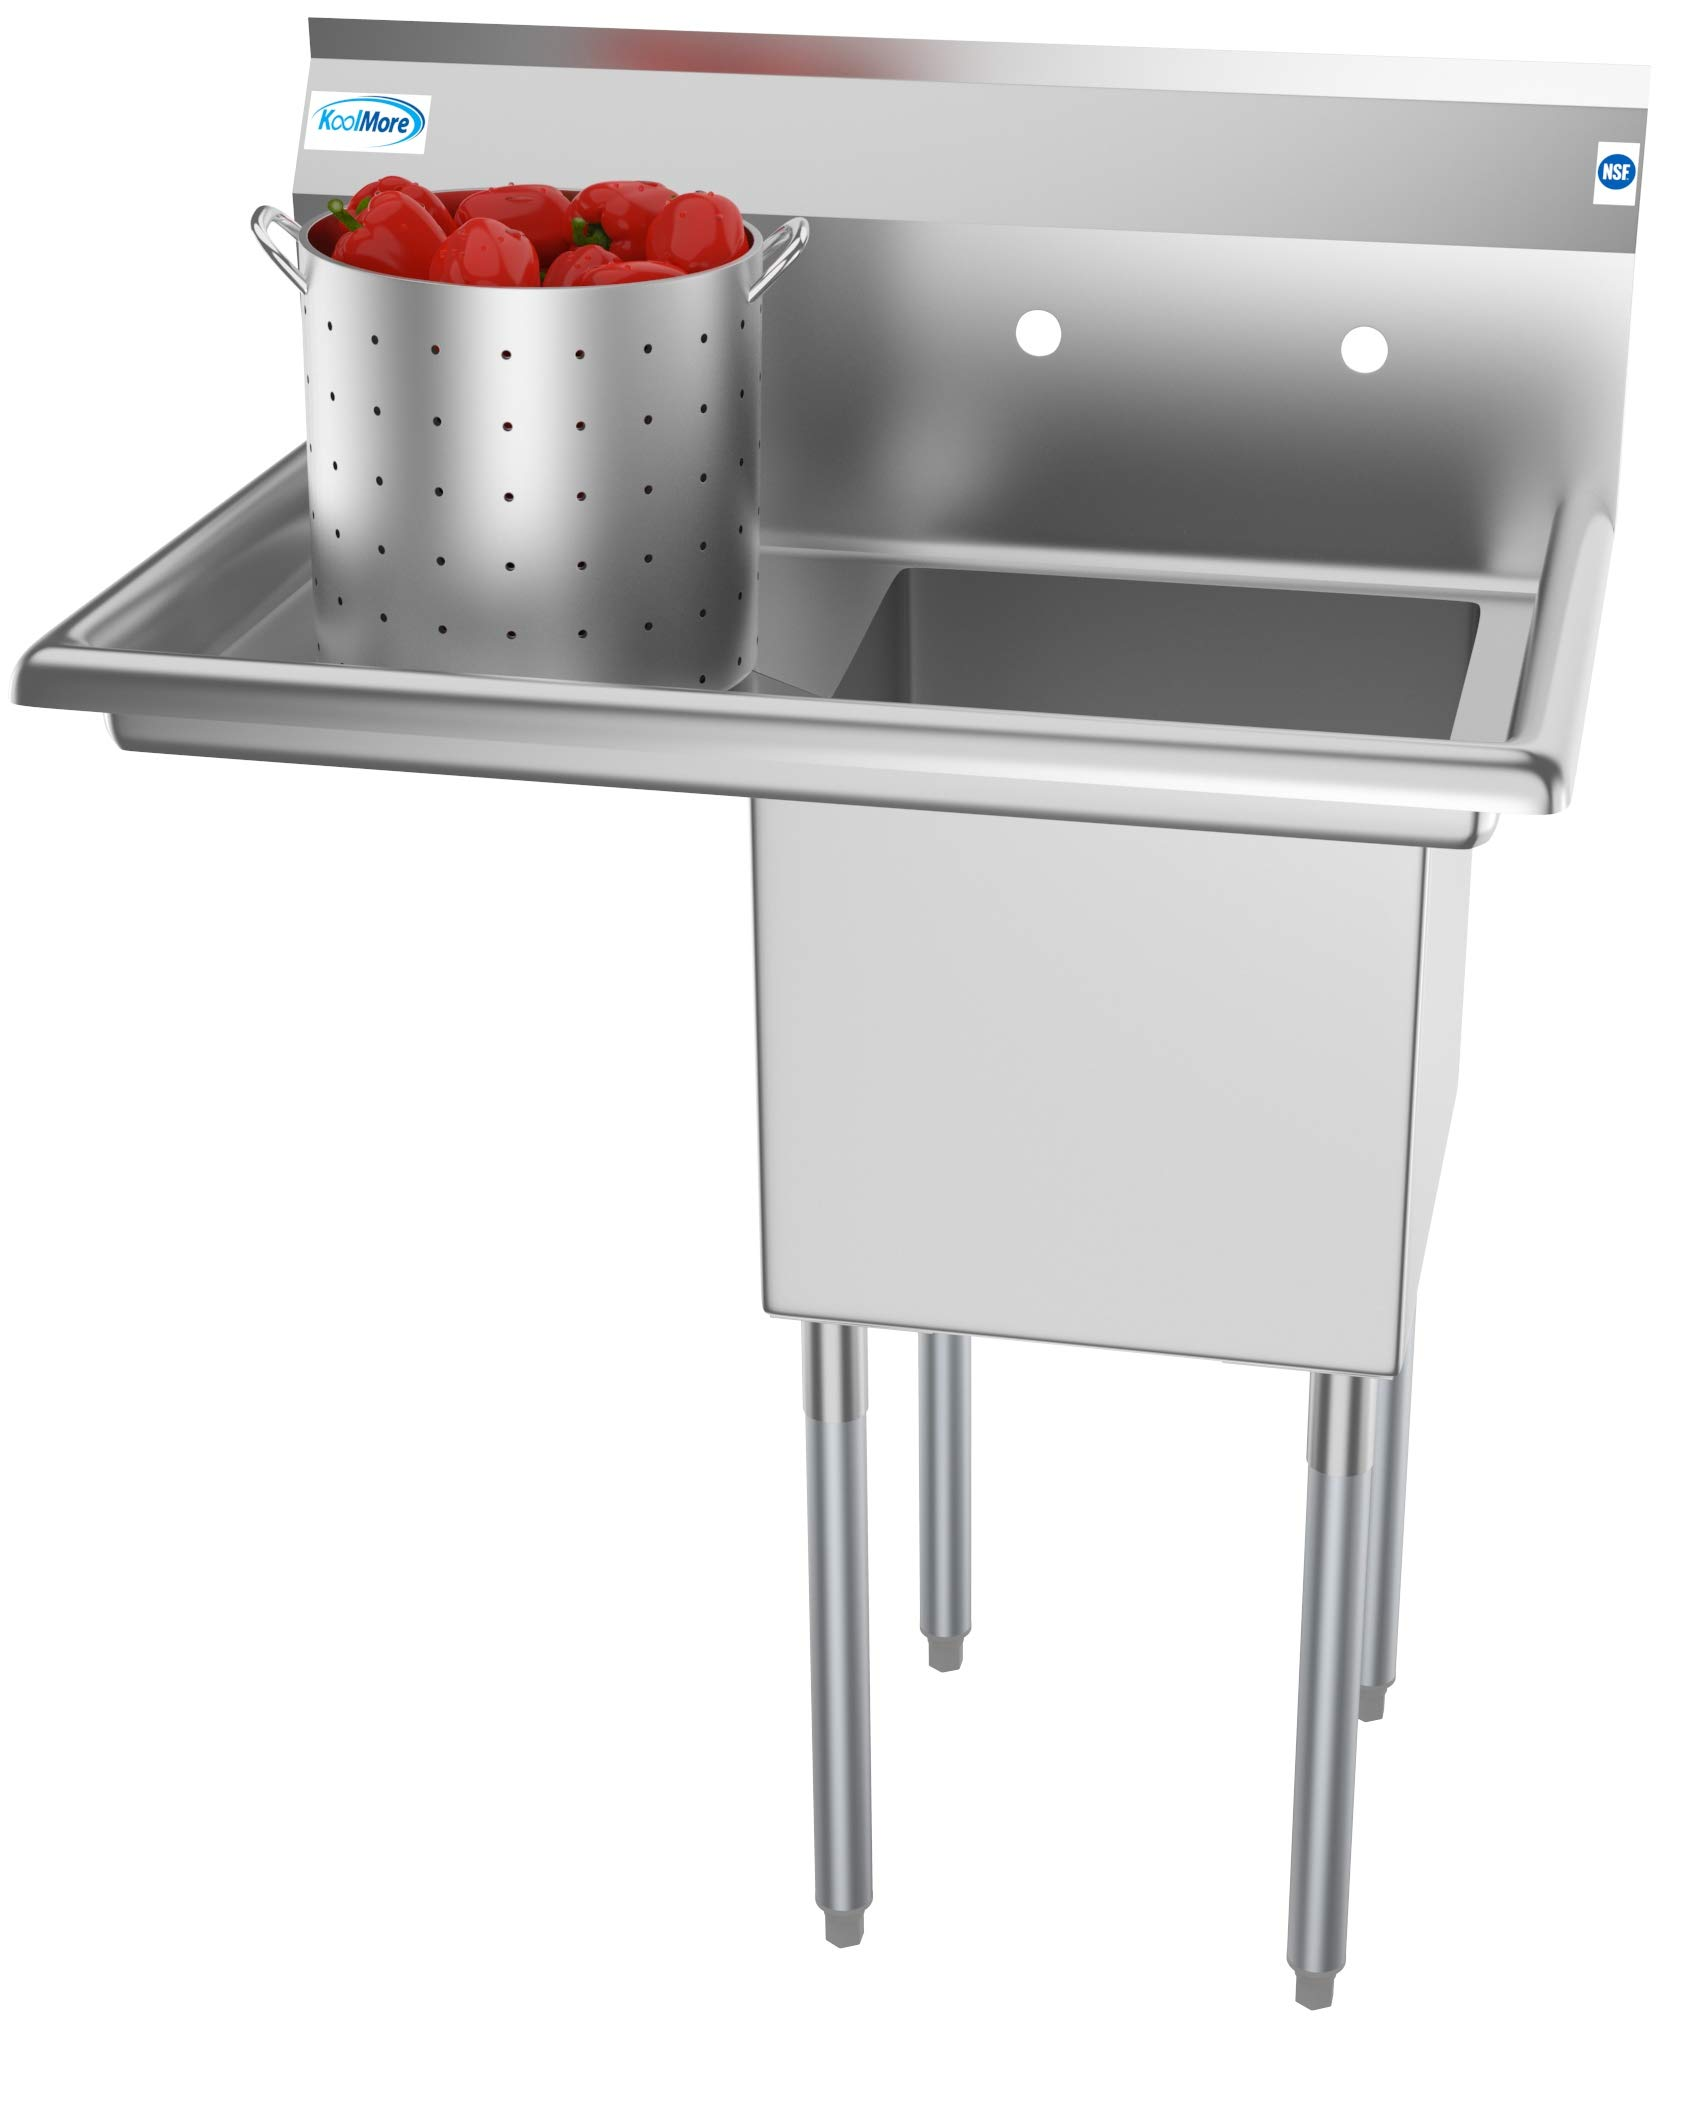 KoolMore 1 Compartment Stainless Steel NSF Commercial Kitchen Prep & Utility Sink with Drainboard - Bowl Size 15'' x 15'' x 12'', Silver